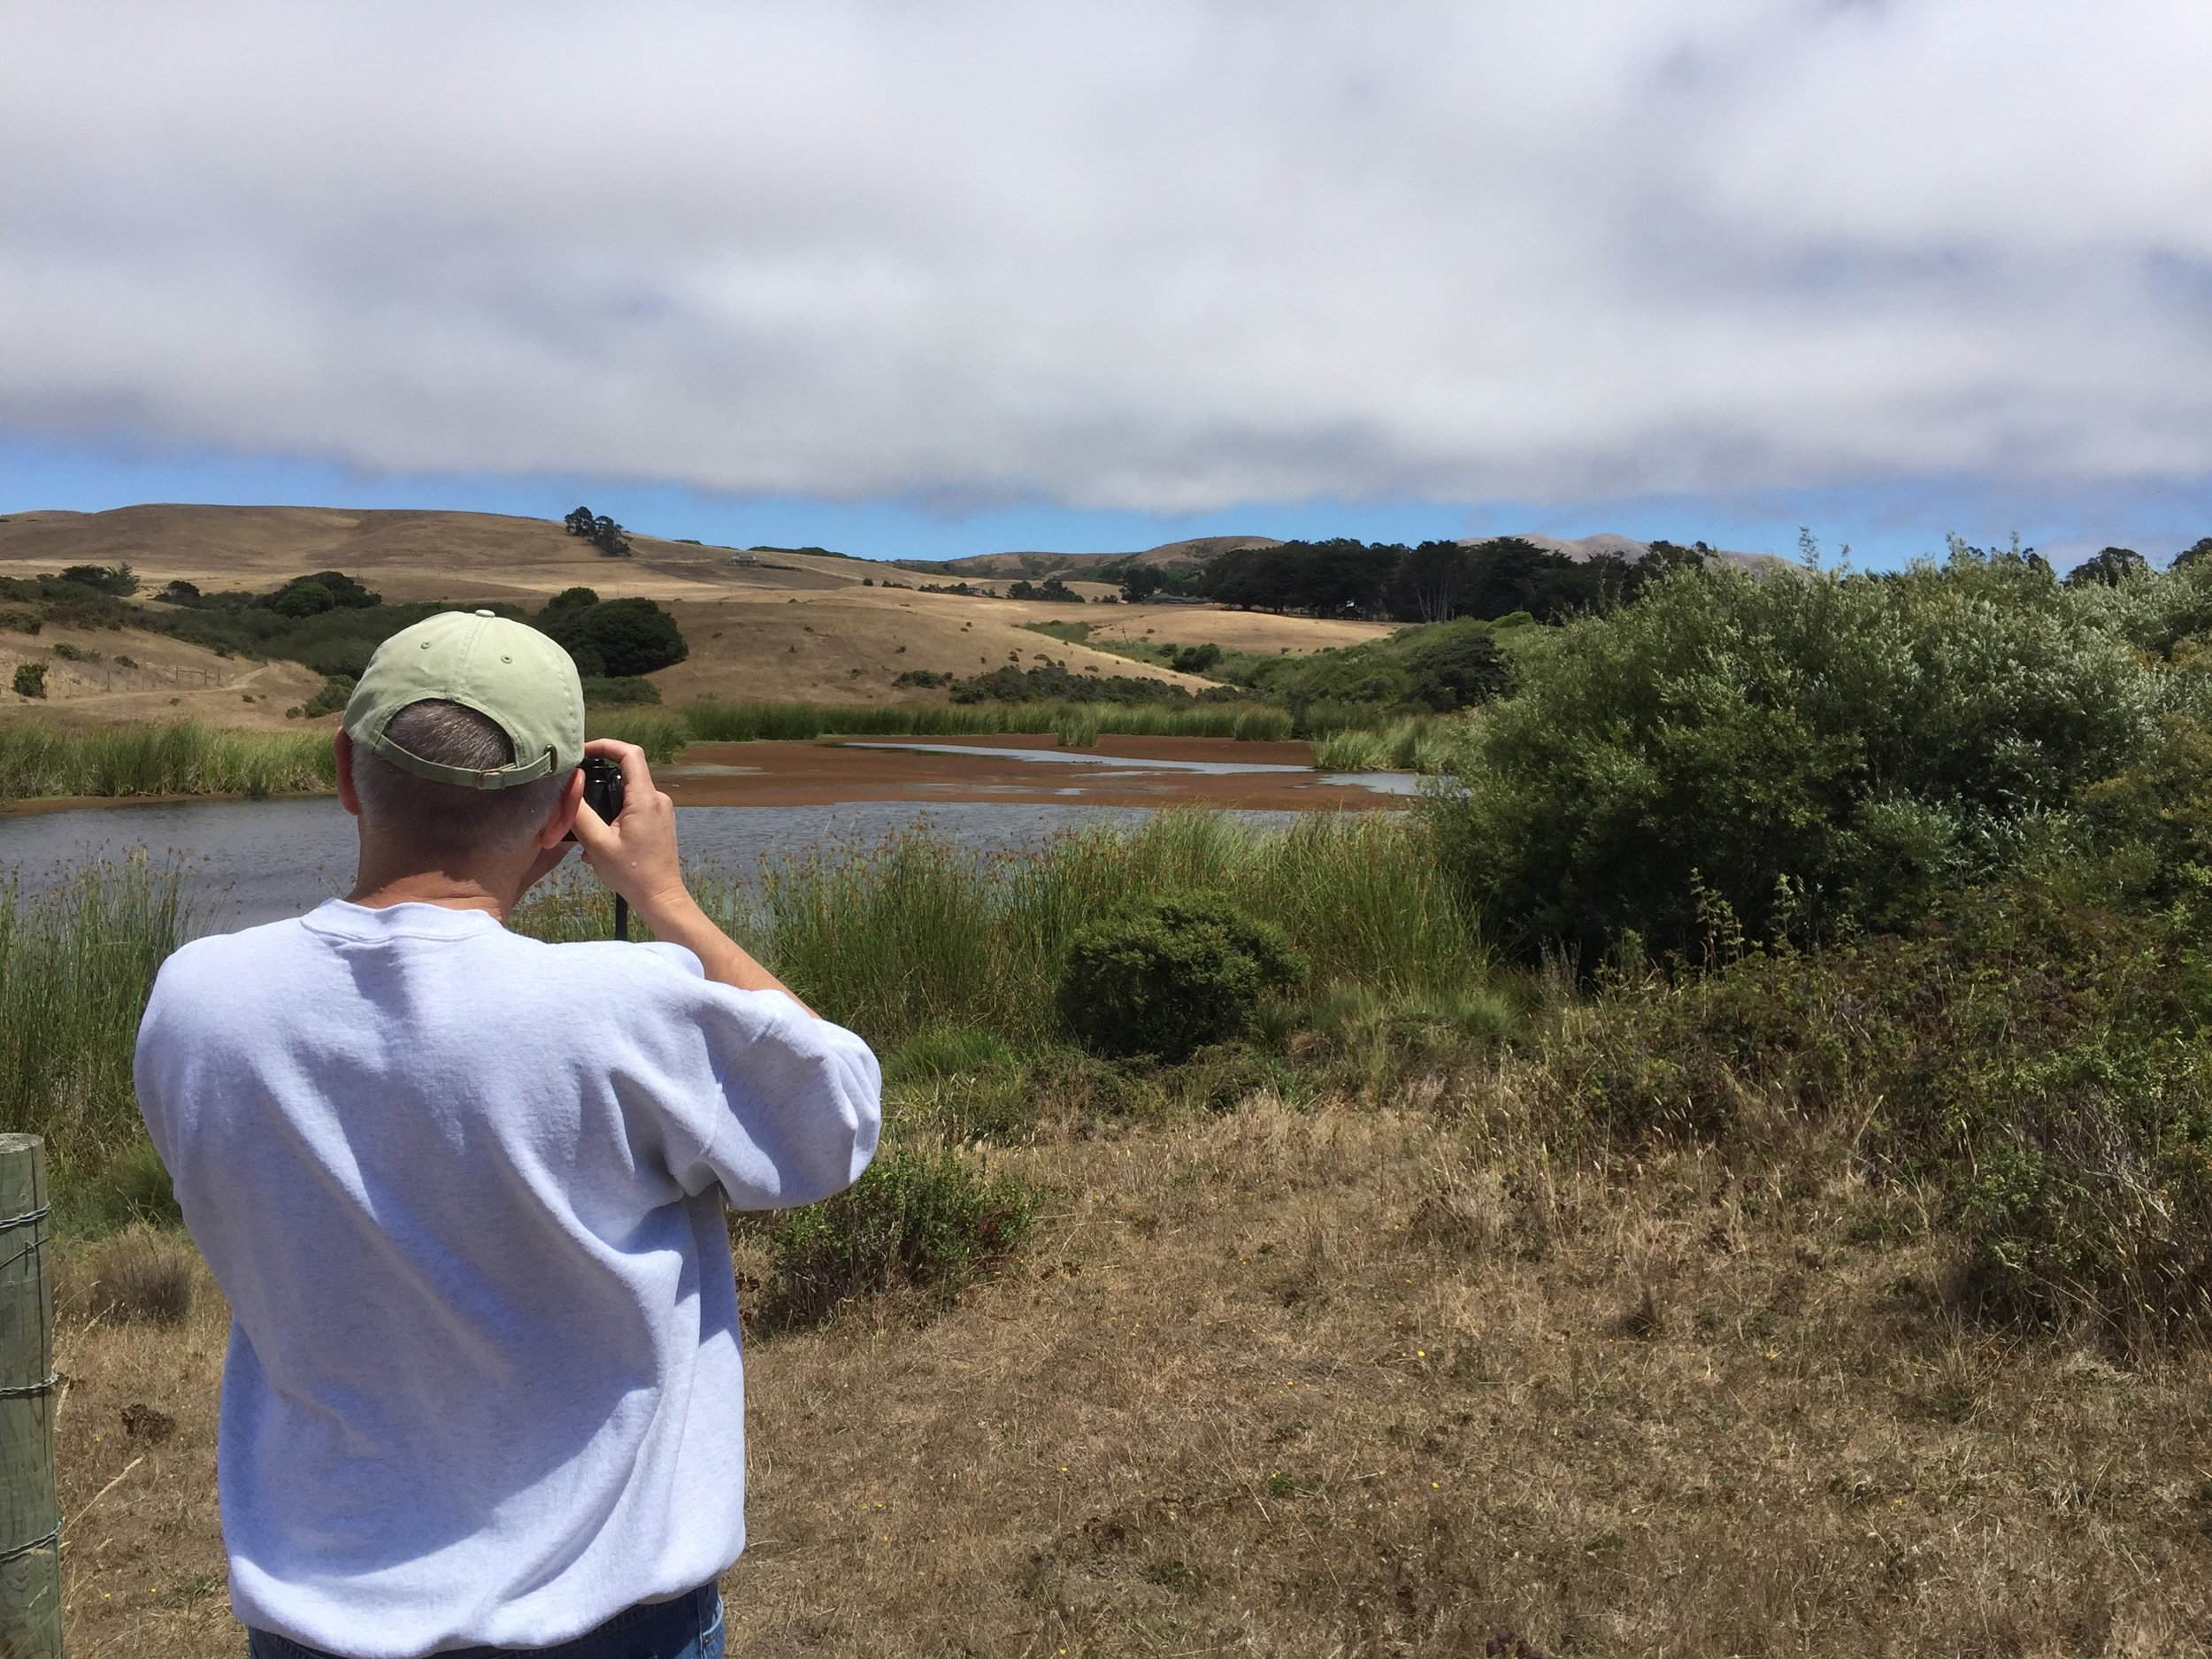 Shooting film in Marin County near Pt. Reyes Station